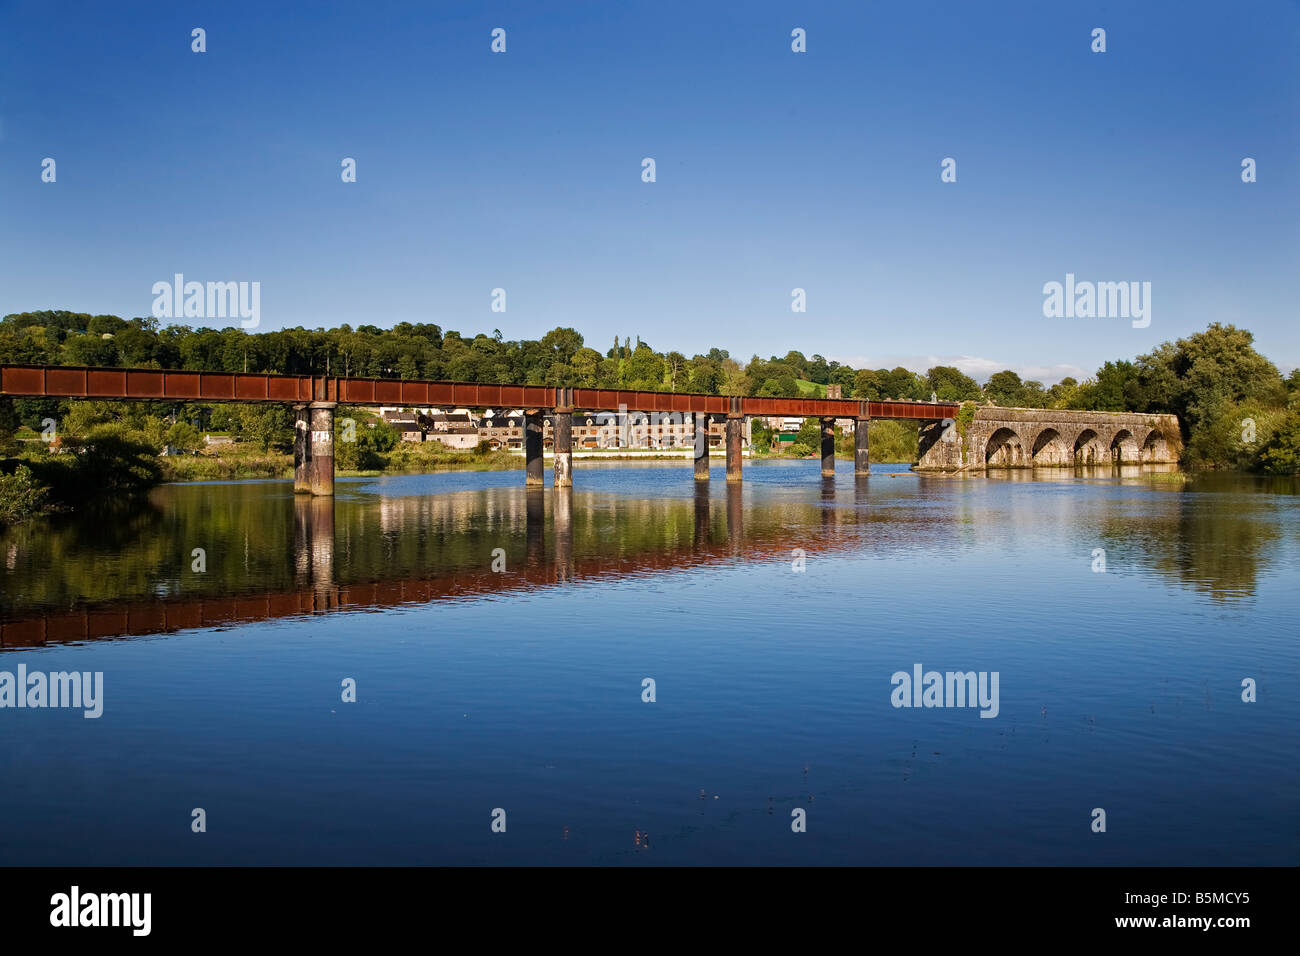 The Blackwater River and old the Railway Bridge, Cappoquin, County Waterford, Ireland - Stock Image